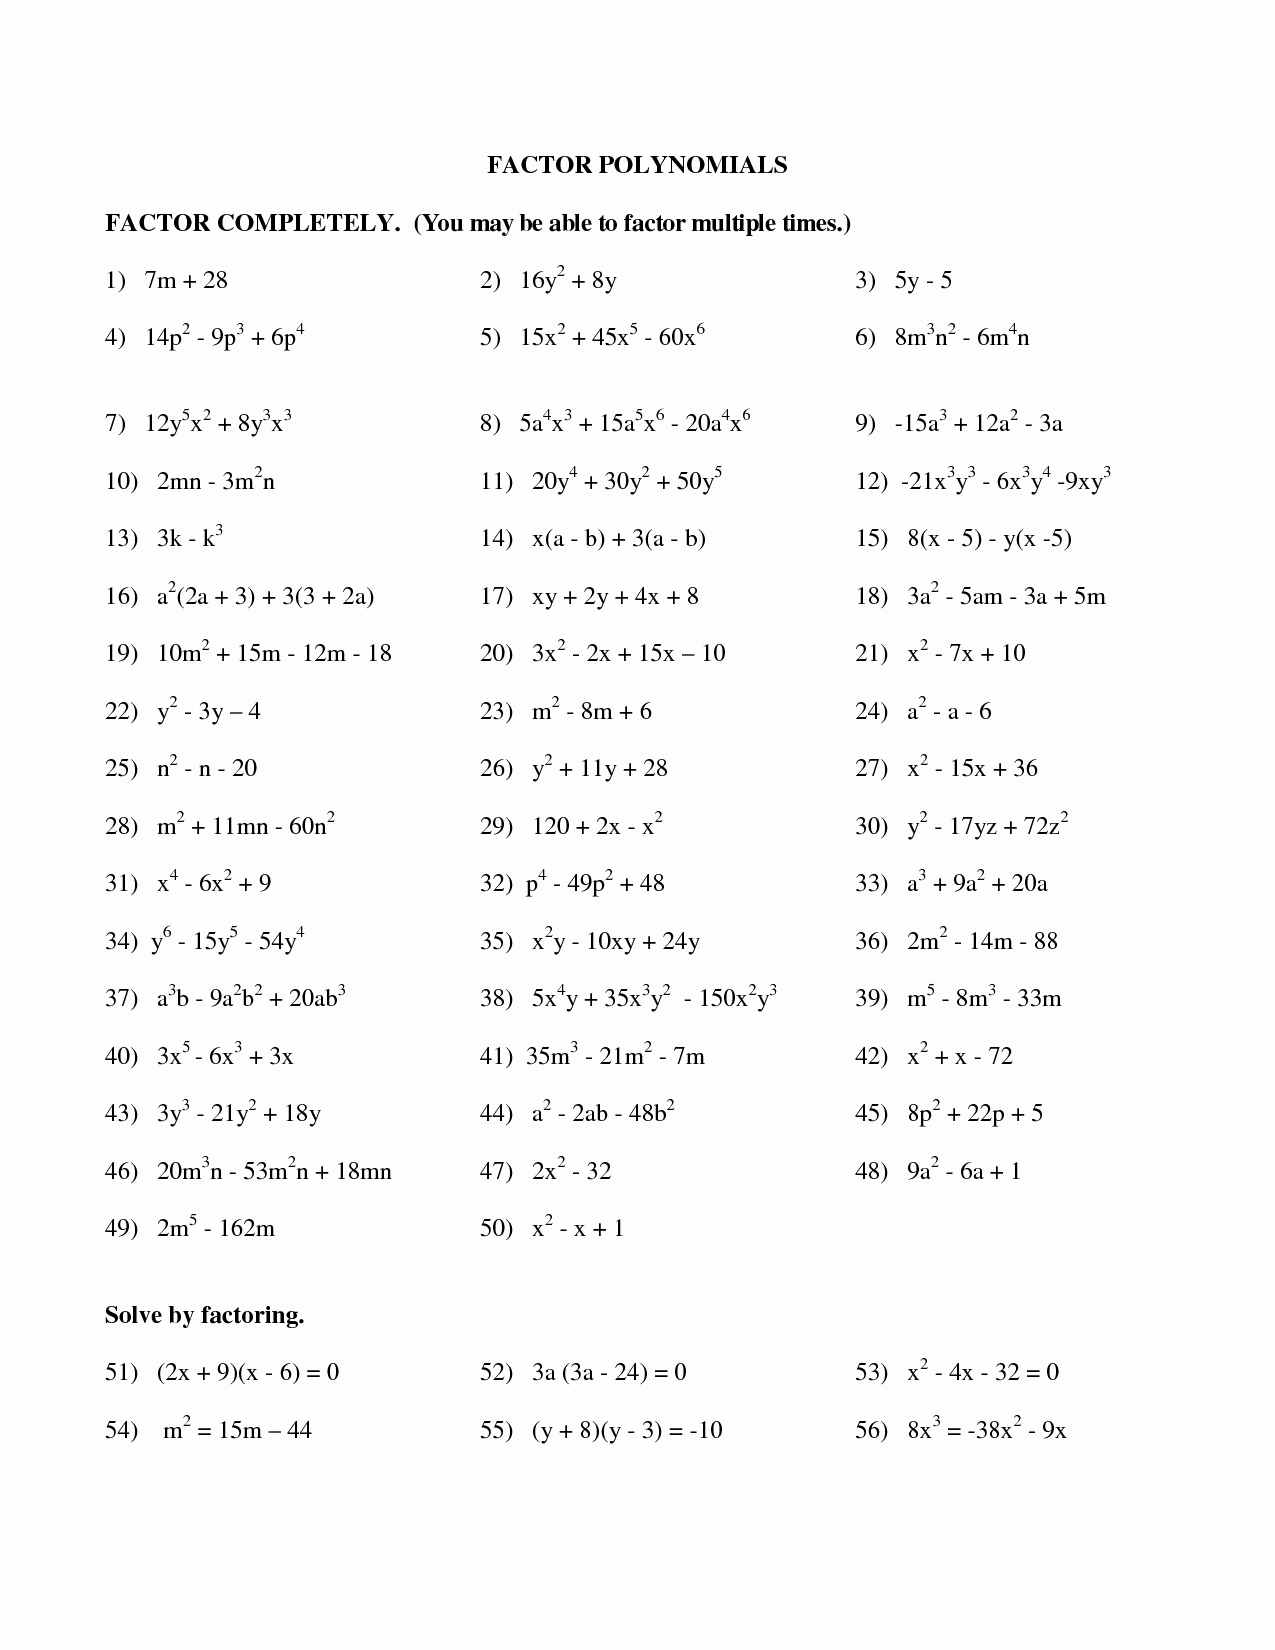 50 Factoring Polynomials Worksheet Answers